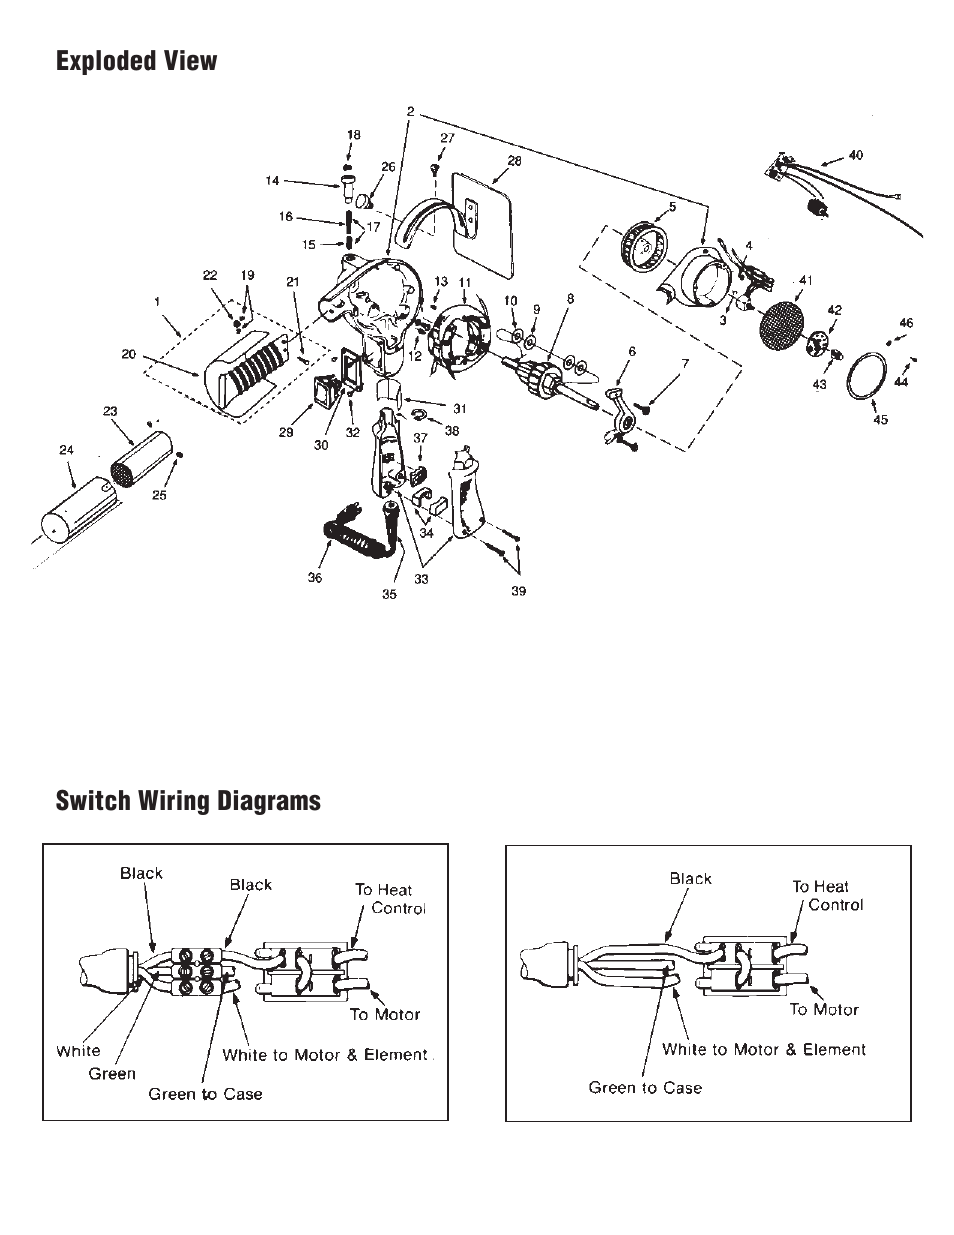 home electrical switch wiring diagrams